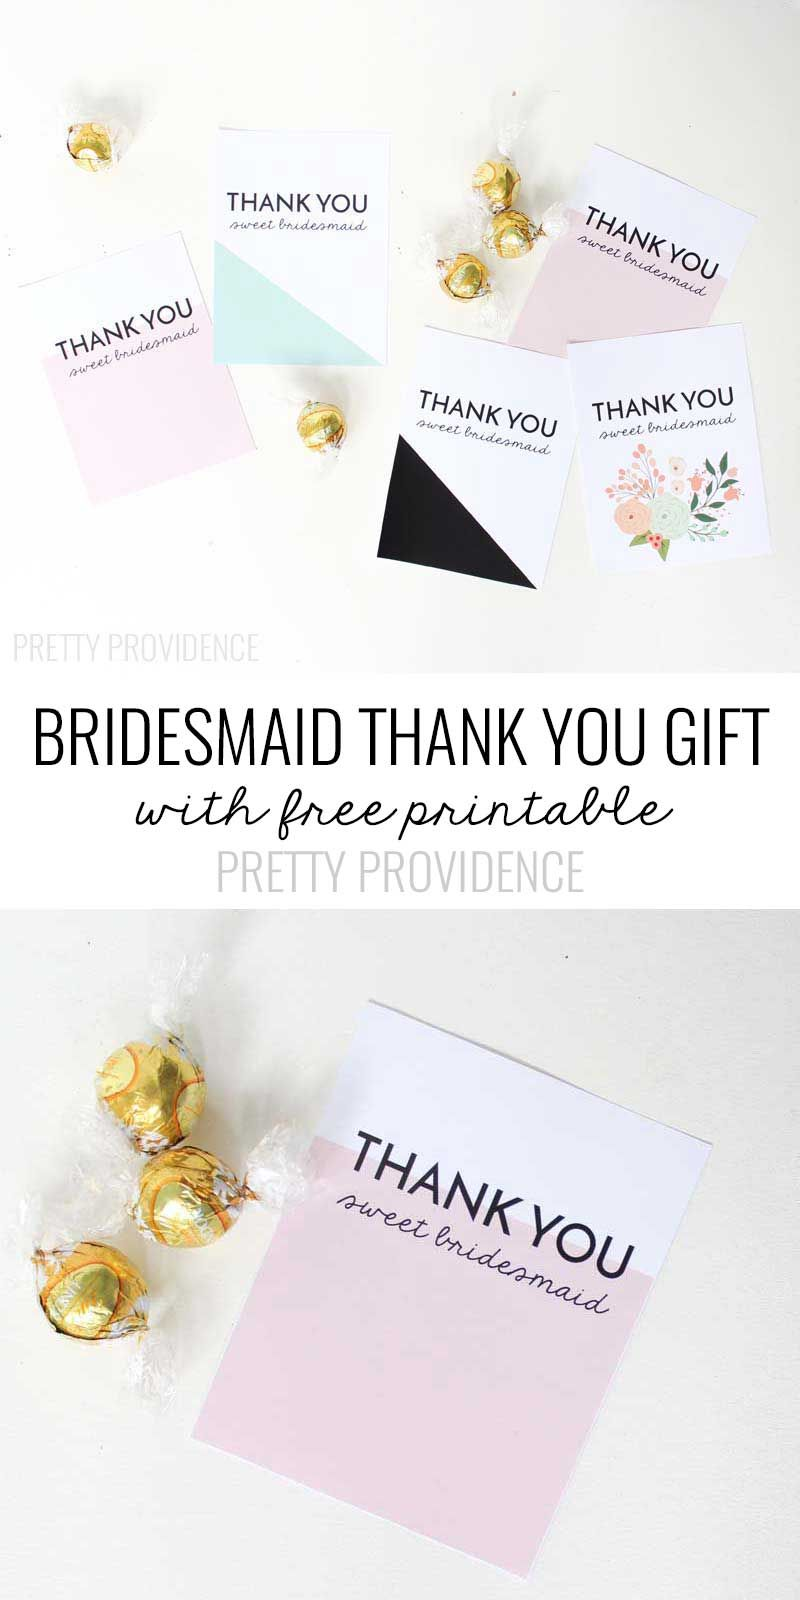 Bridesmaid Thank You Gift Printable Bridesmaid Thank You Cards Bridesmaid Thank You Thank You Gifts